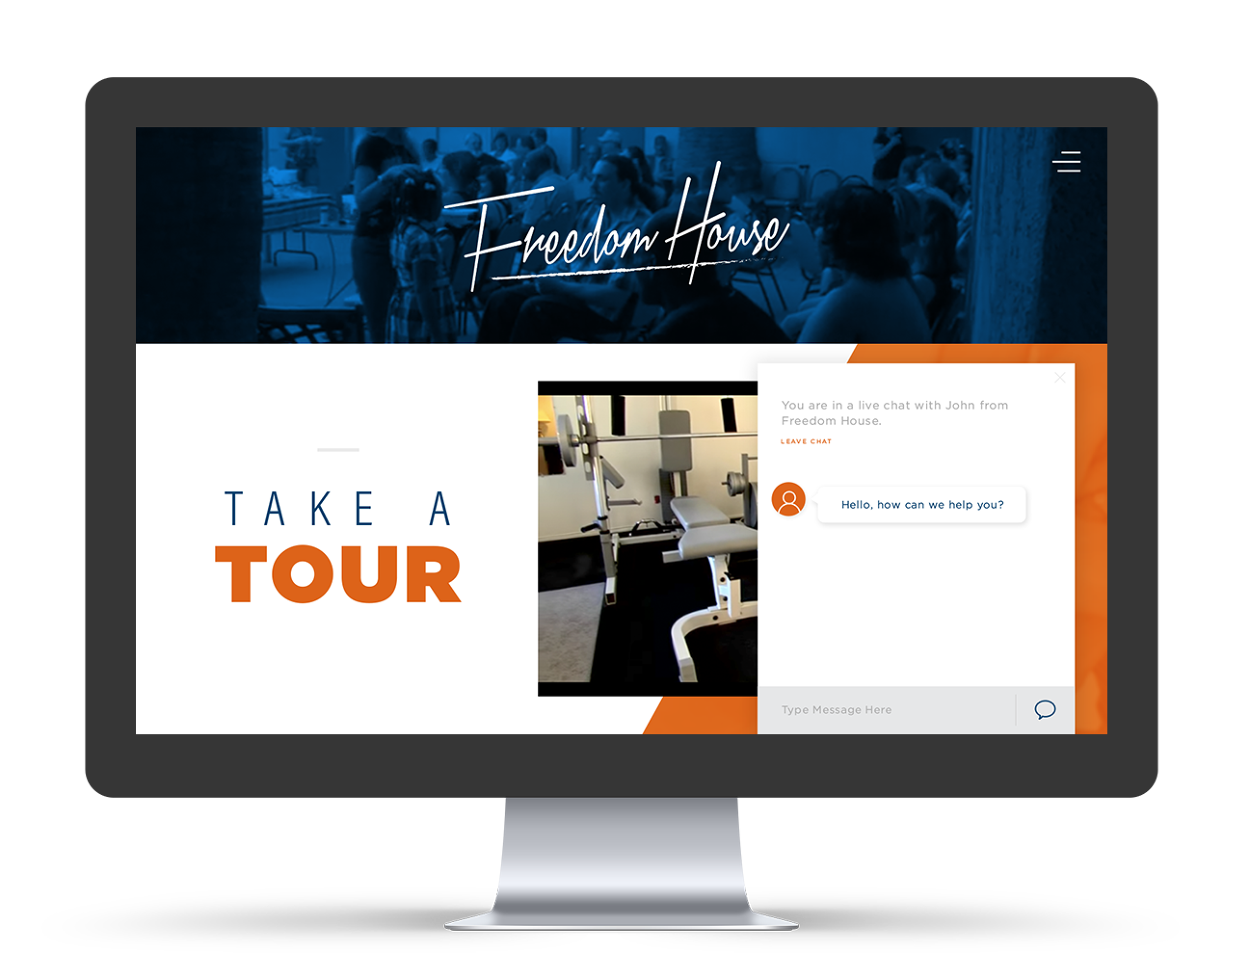 freedomhouse_homepage_mockup_1024x768_1250.png